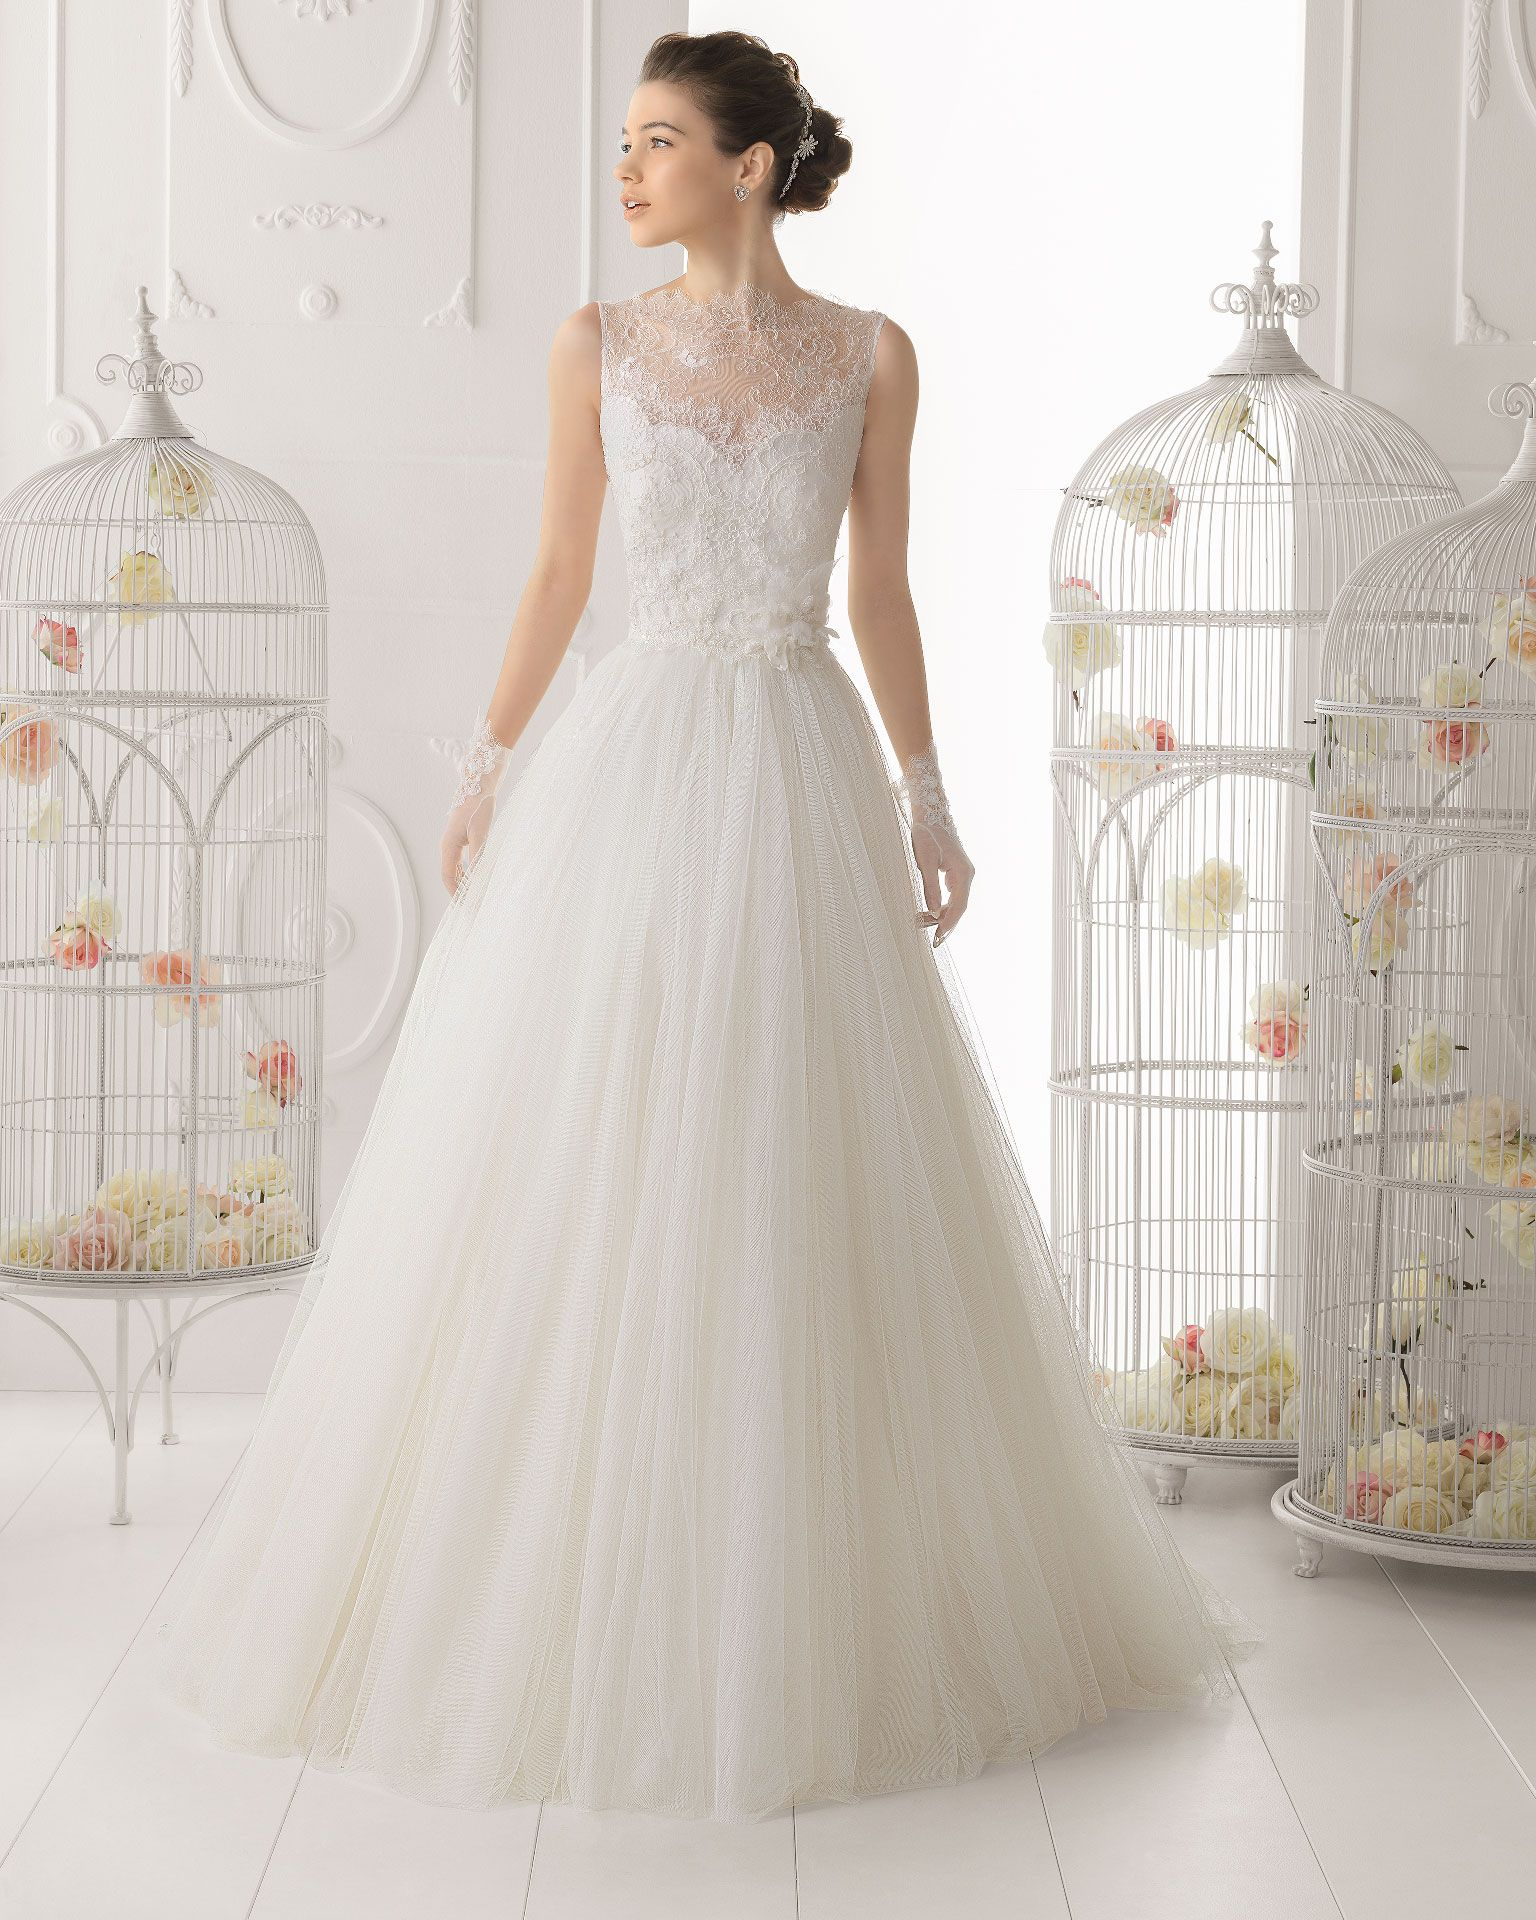 Aire Barcelona wedding dress 2014 Bridal Ocarina | wedding ideas ...